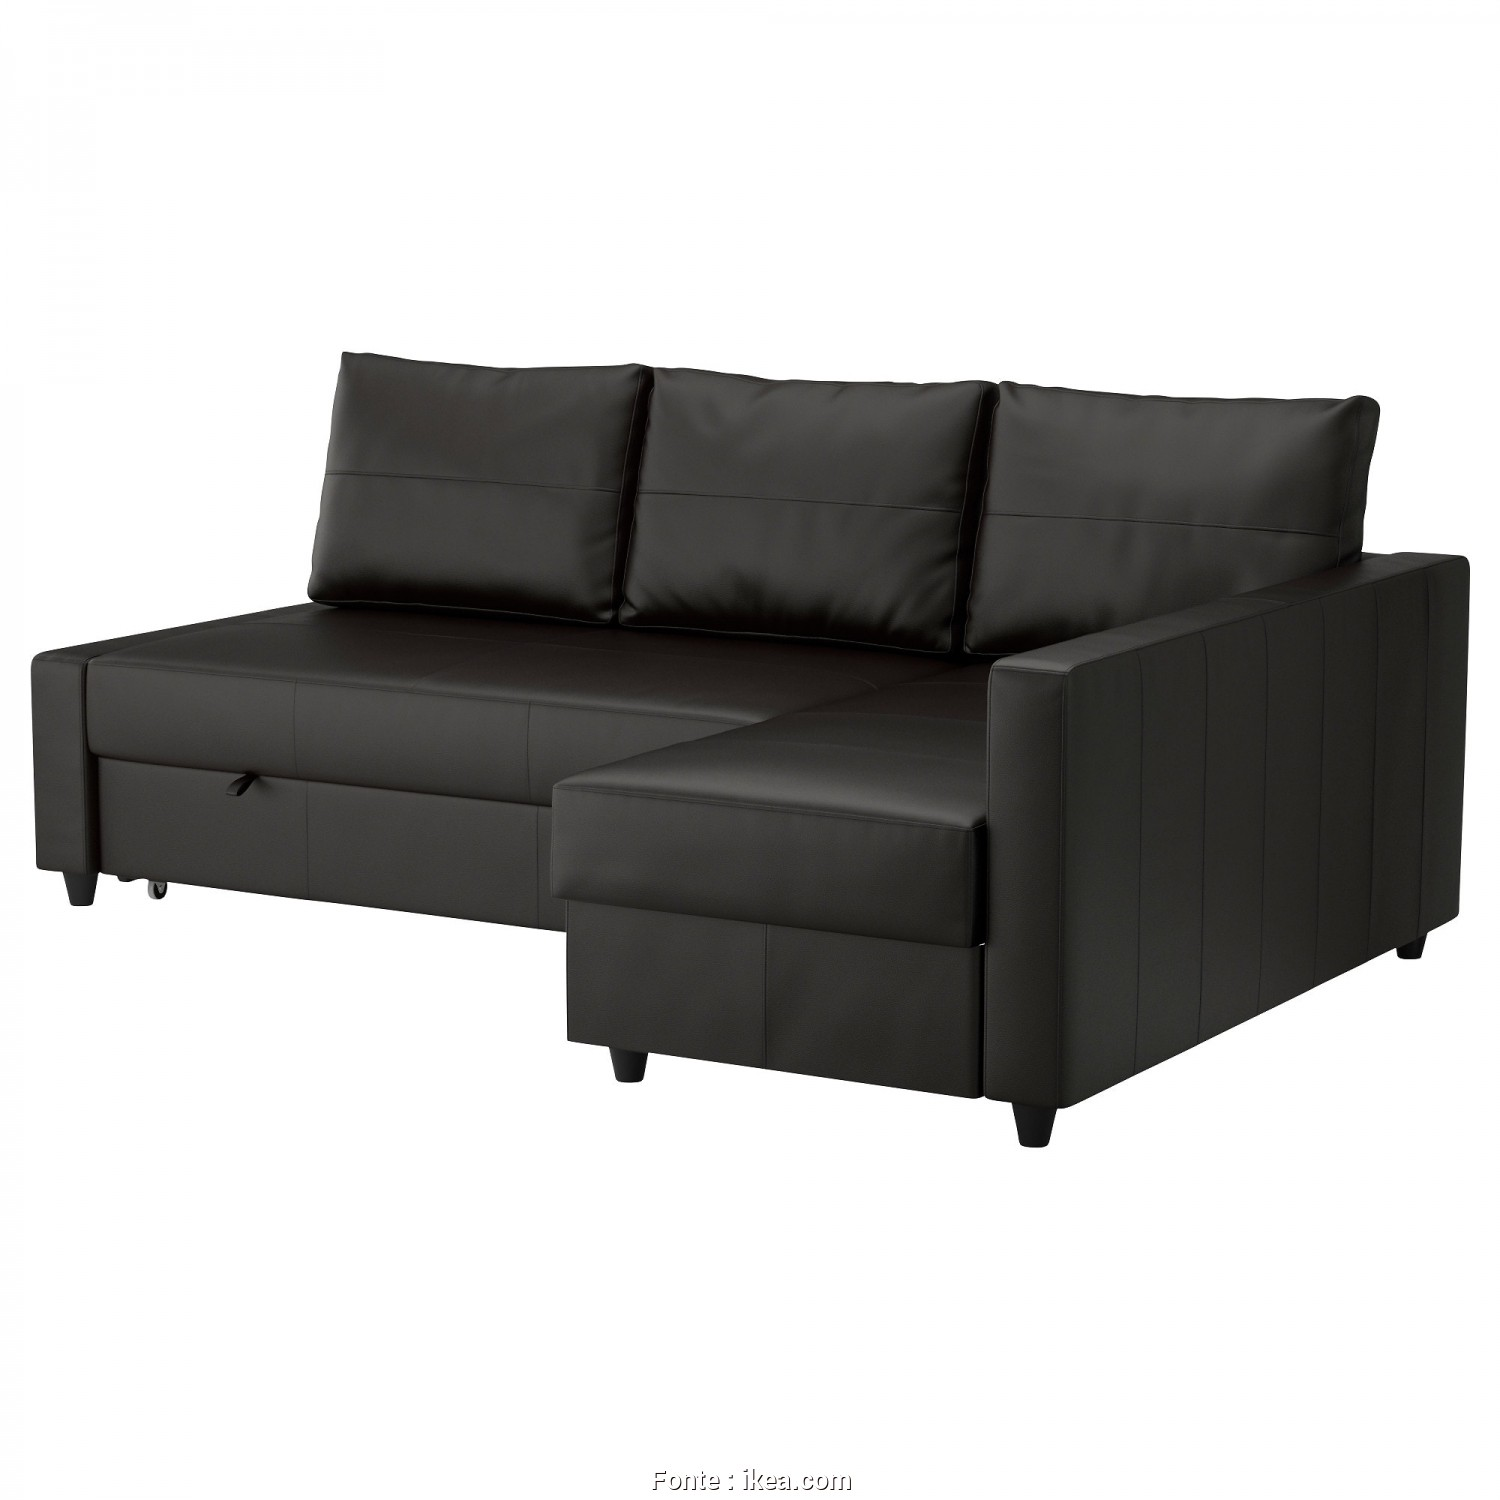 How Do, Open An Ikea Futon, Deale FRIHETEN Sleeper Sectional,3 Seat W/Storage, Skiftebo Dark Orange, IKEA